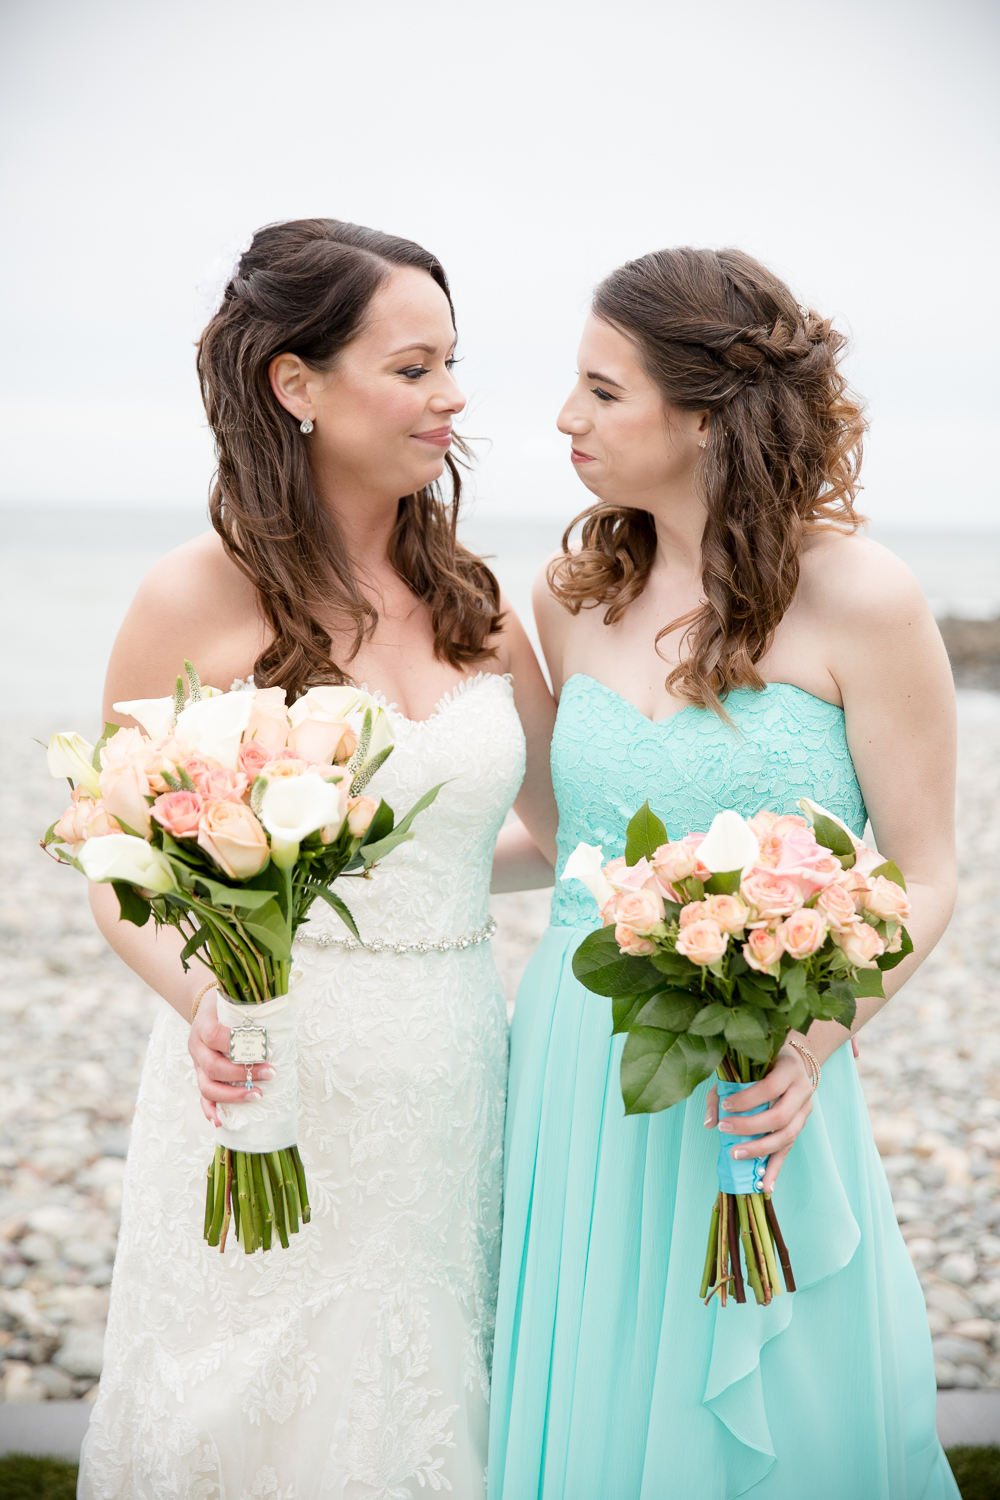 oceanview-of-nahant-wedding-26-north-studios-1-4.jpg